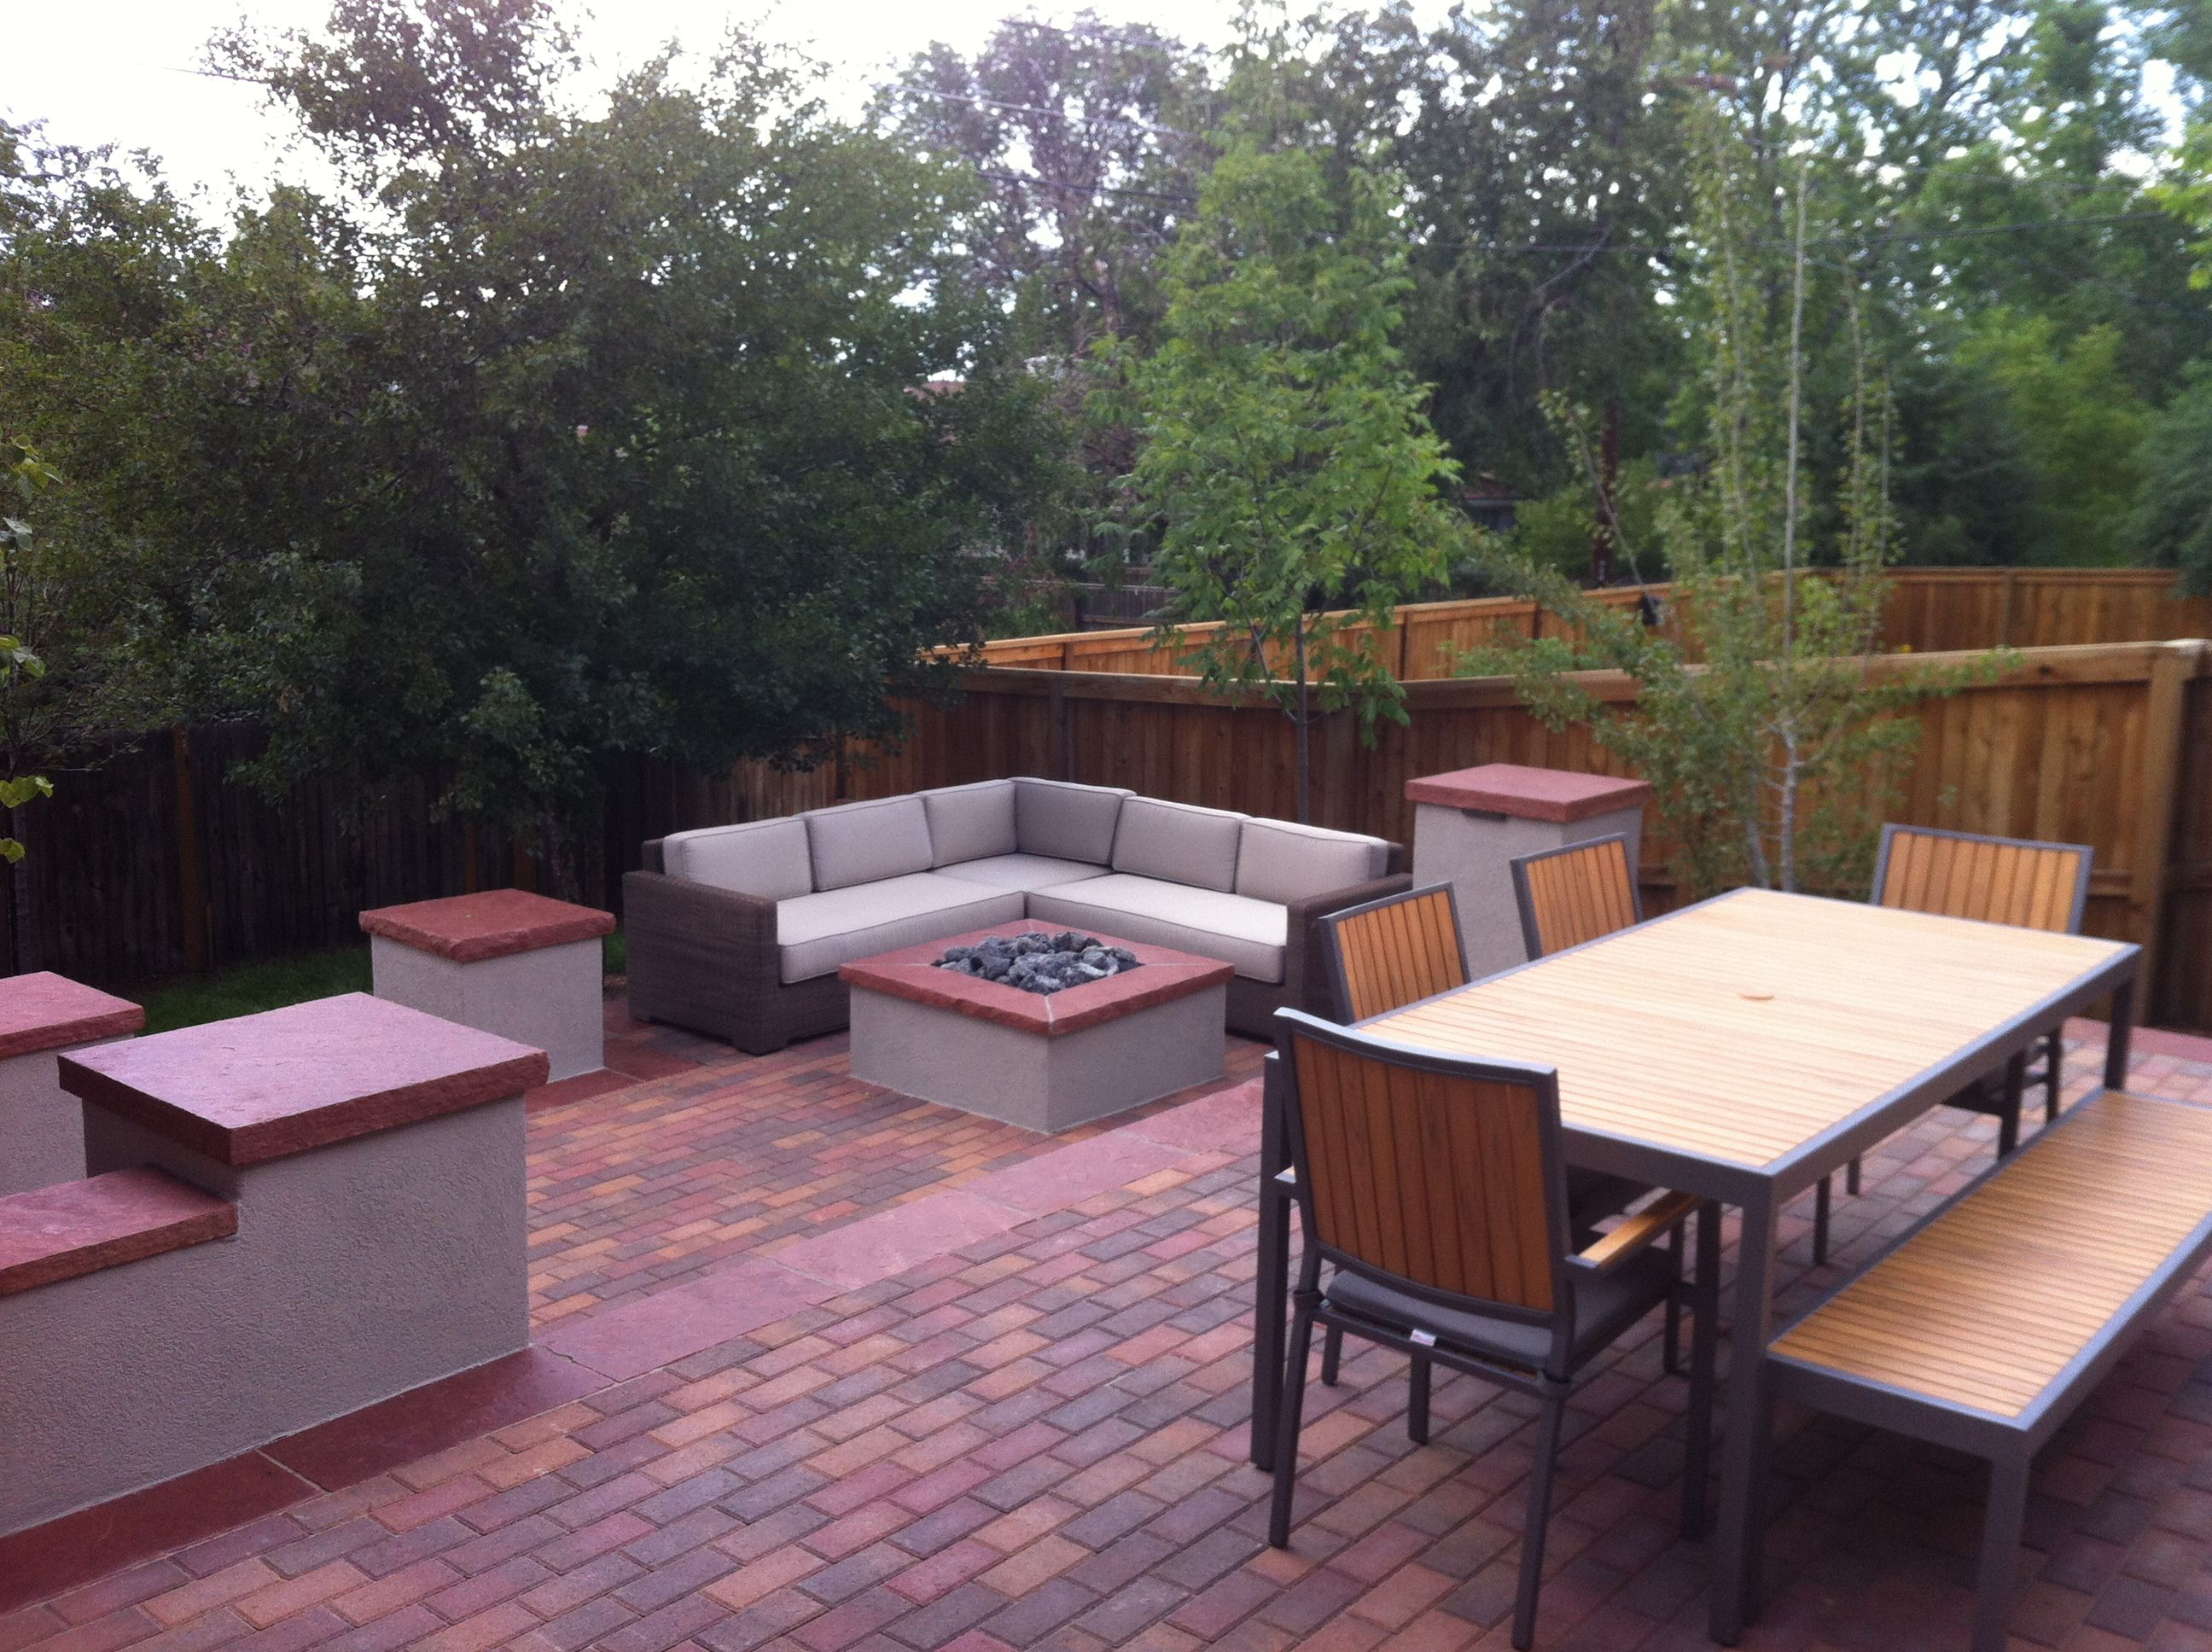 Outdoor living room with fire pit | Outdoor living room ... on Living Room Fire Pit id=55298